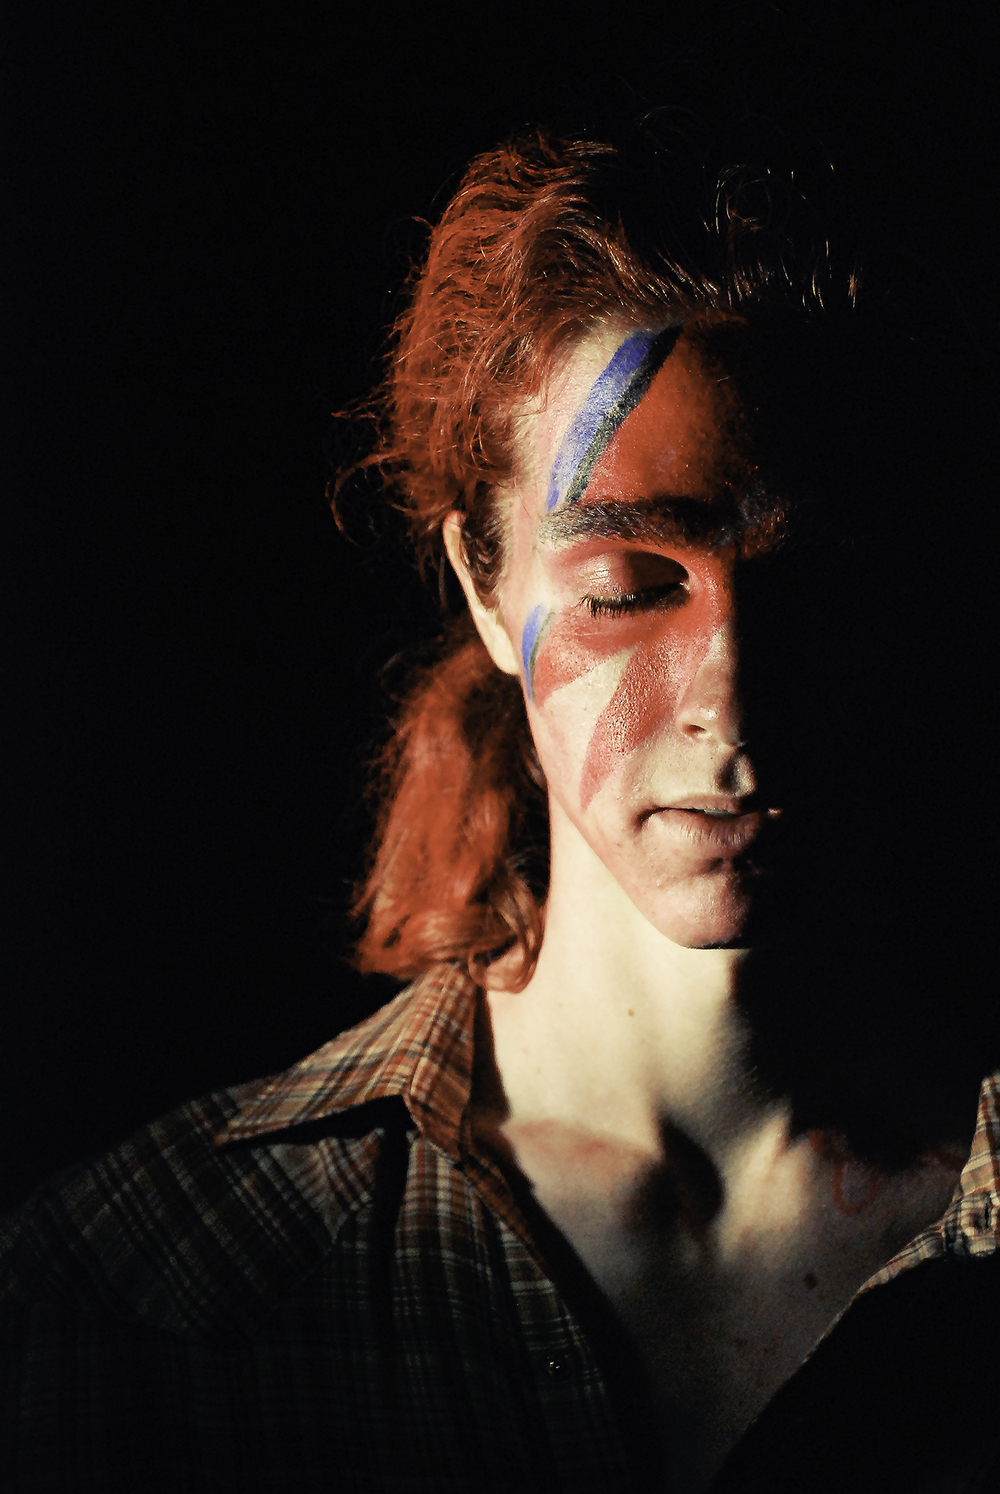 Aladdin Sane. October, 2008.